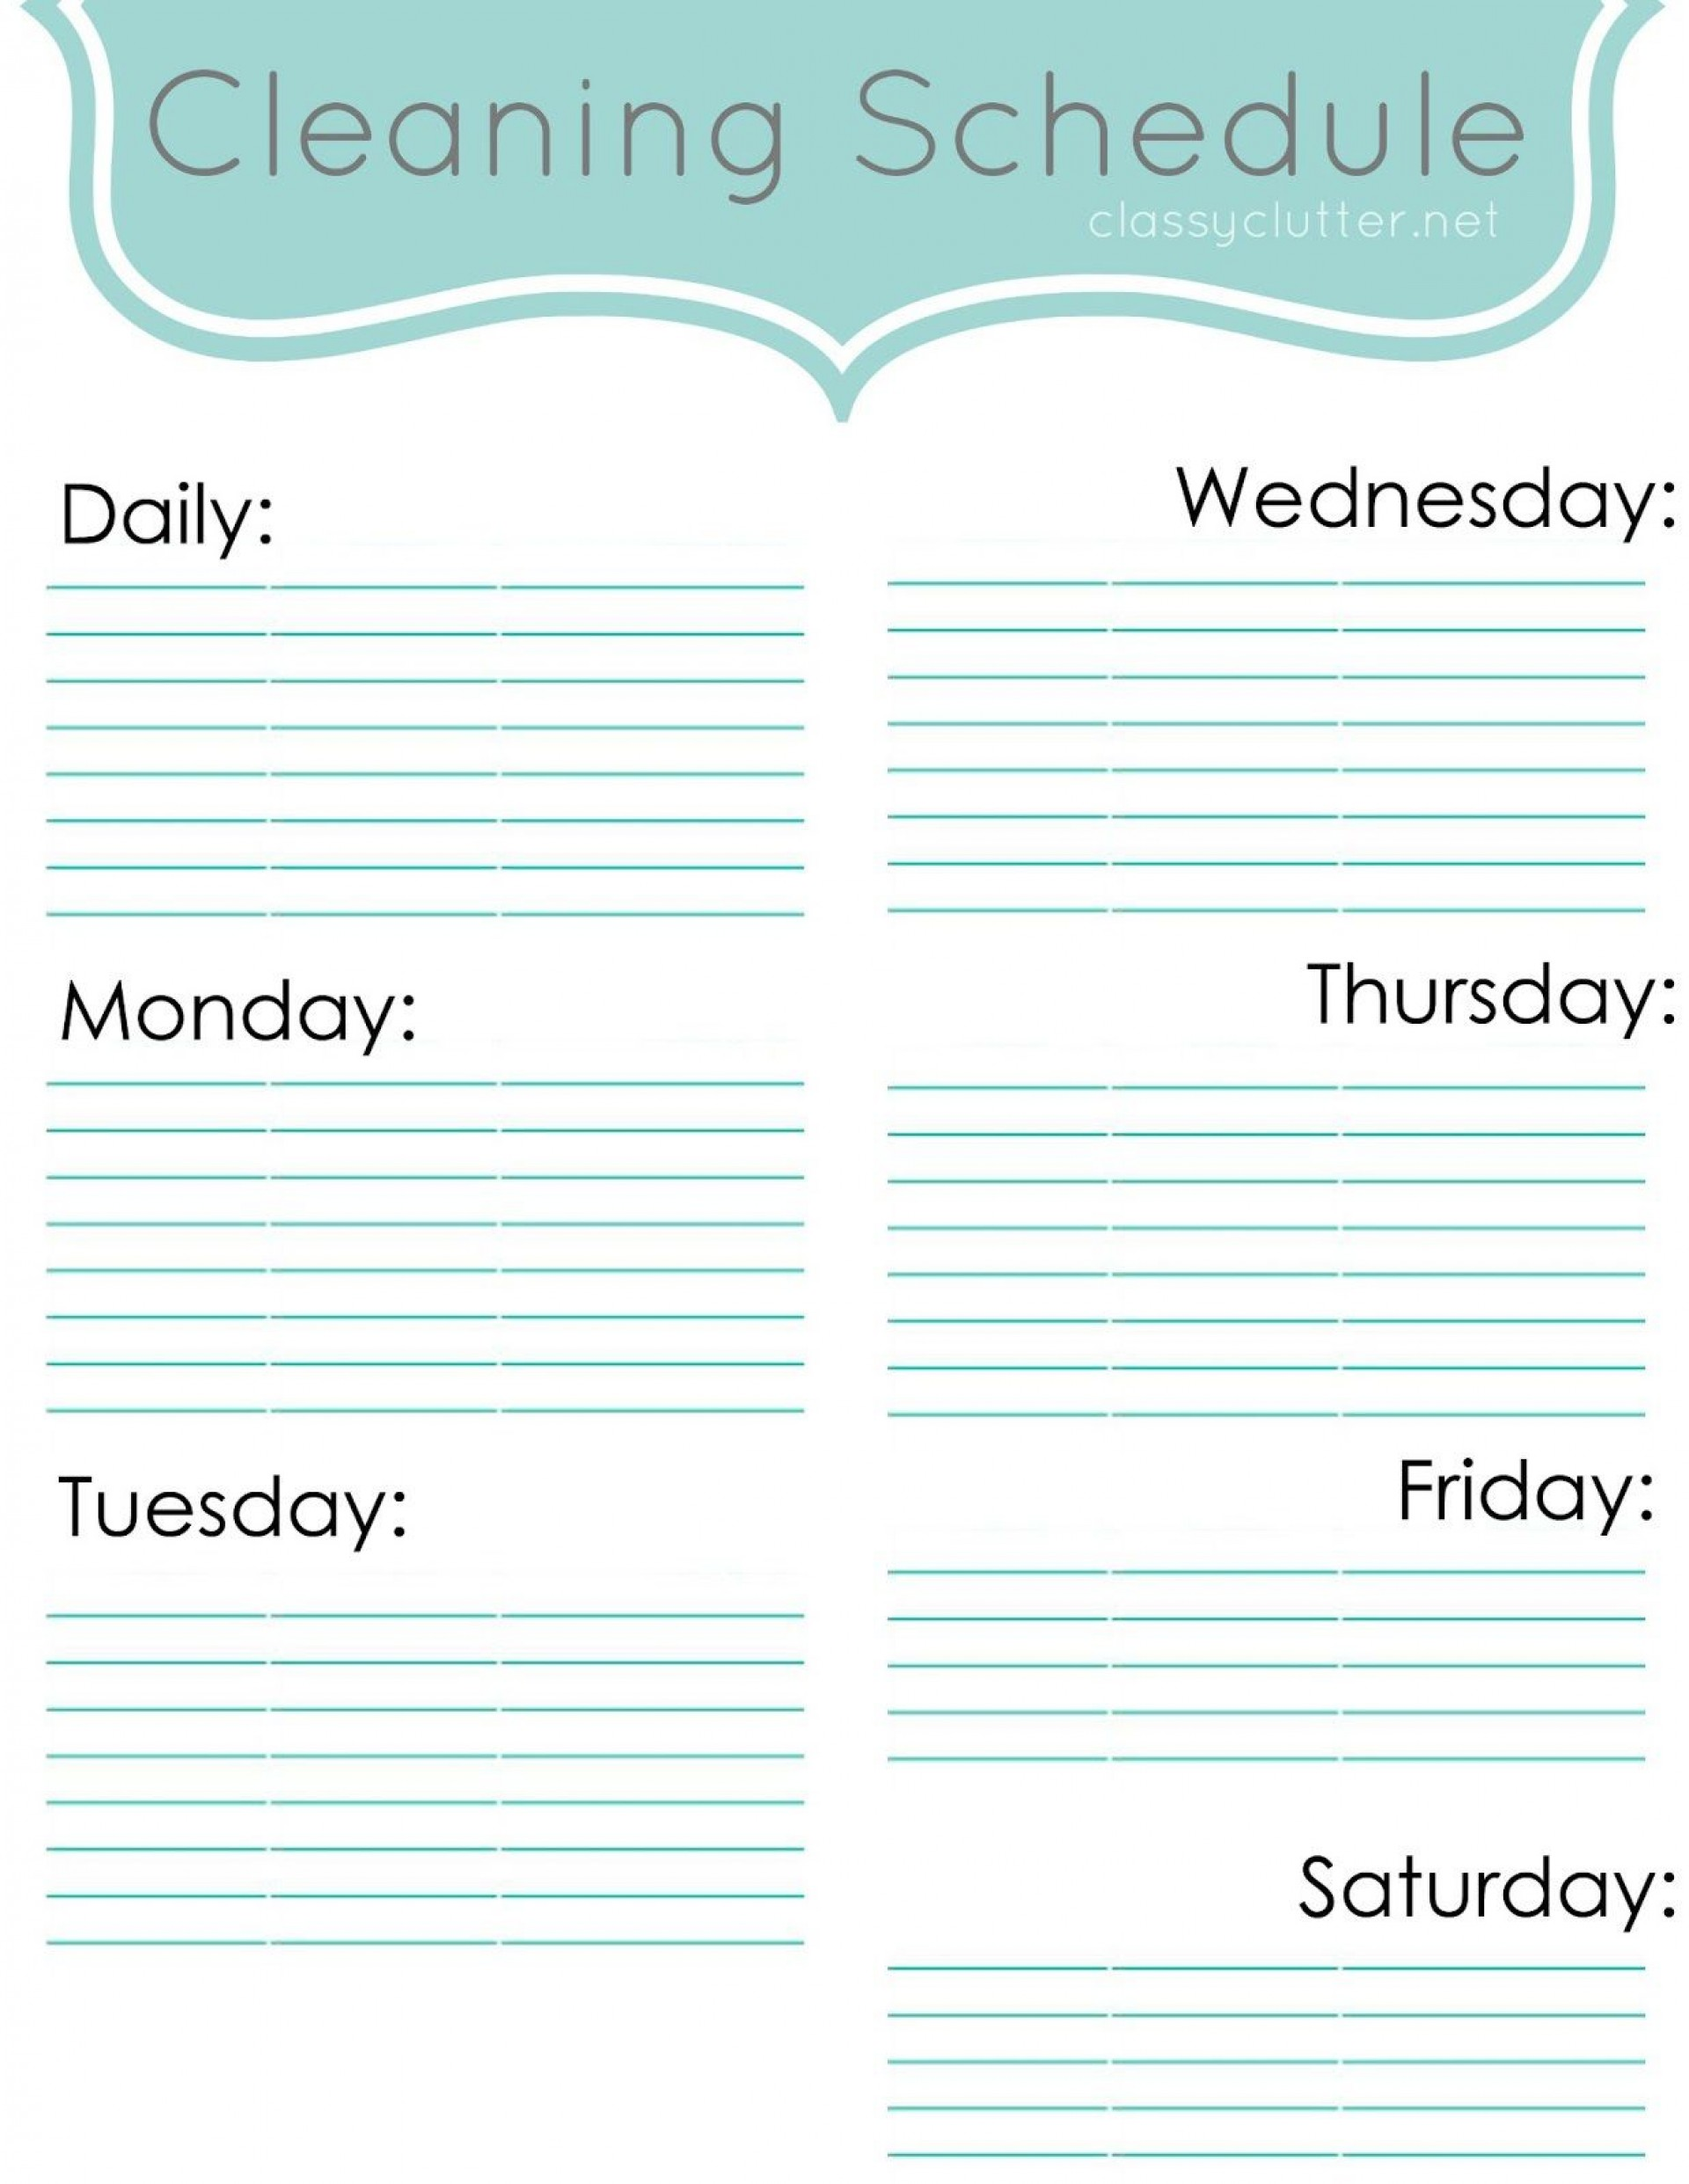 009 Wondrou Weekly Cleaning Schedule Form High Definition  Template Restaurant Excel1920